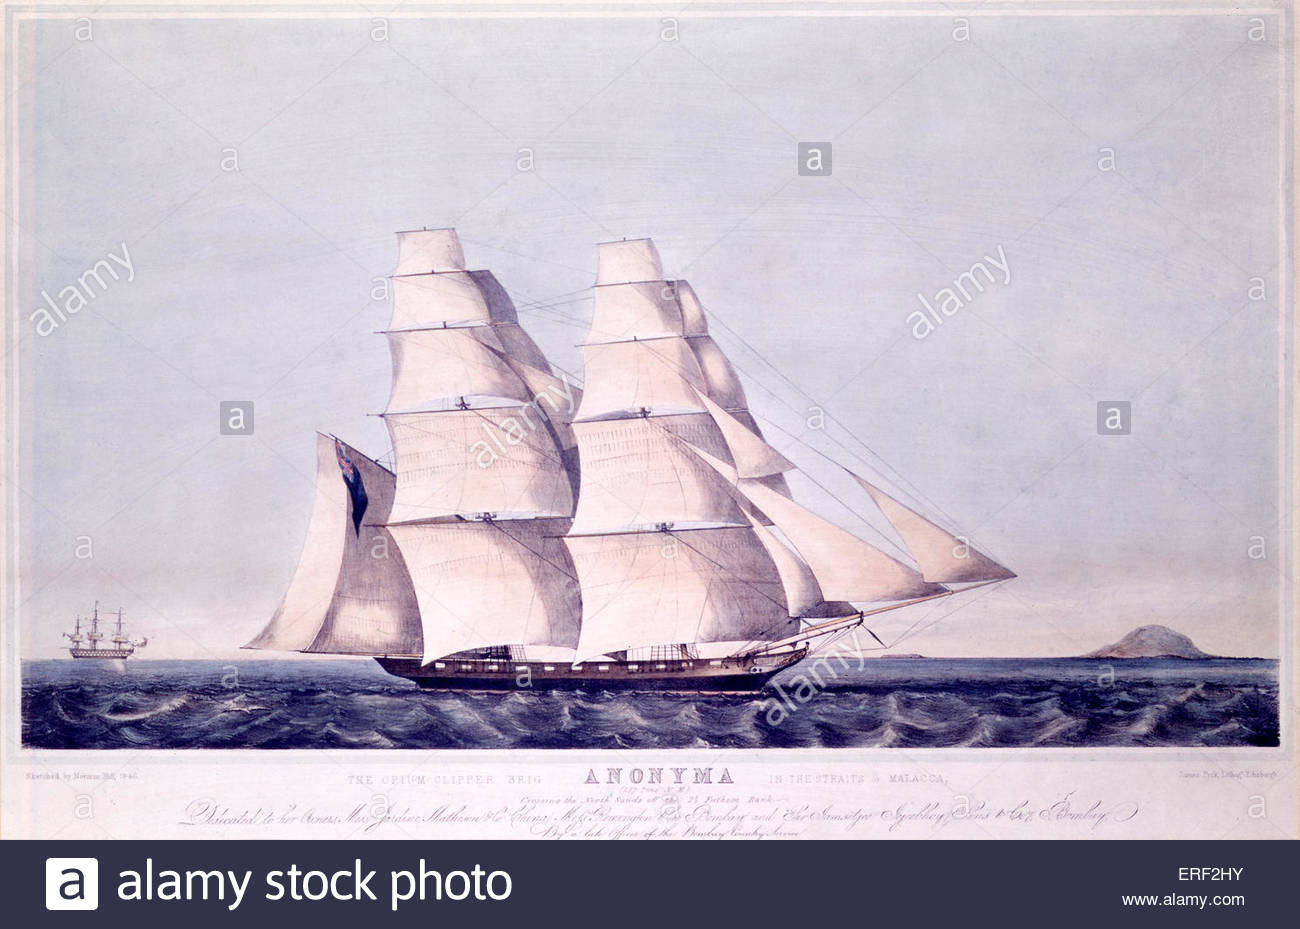 The Opium Clipper Brig Anonyma in the Straits of Malacca, by Norman Hill and James Peck, 1846. Coloured lithograph, - Stock Image